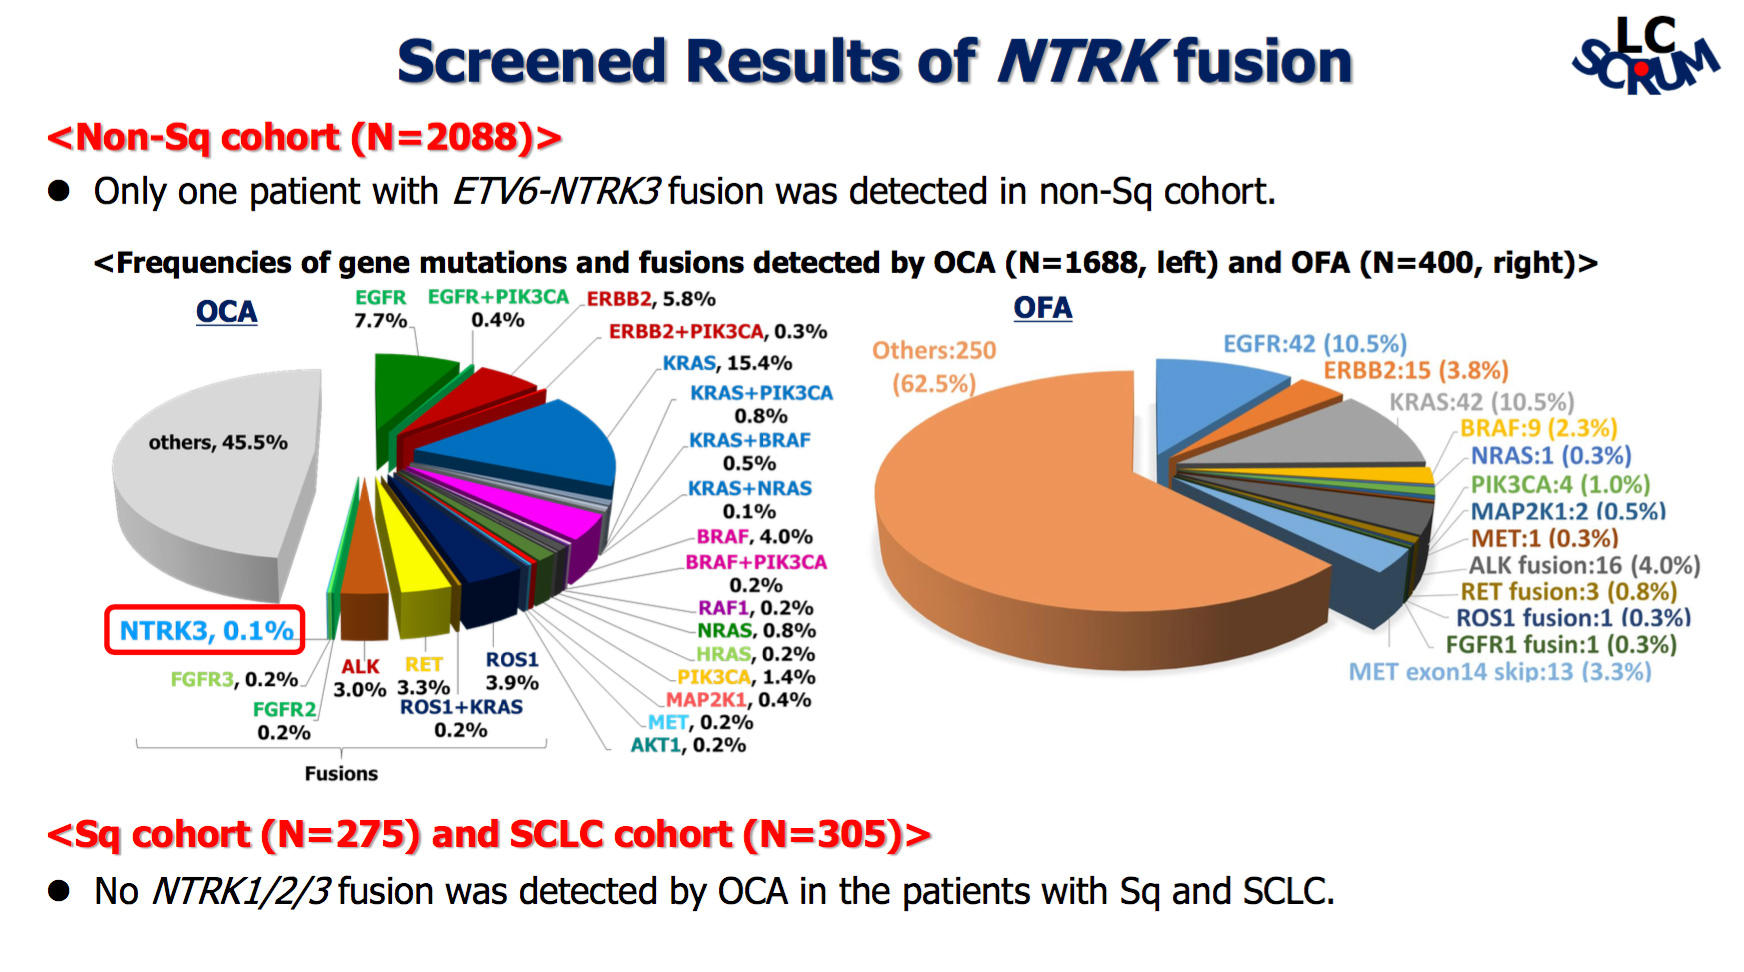 Screened Results of NTRK fusion